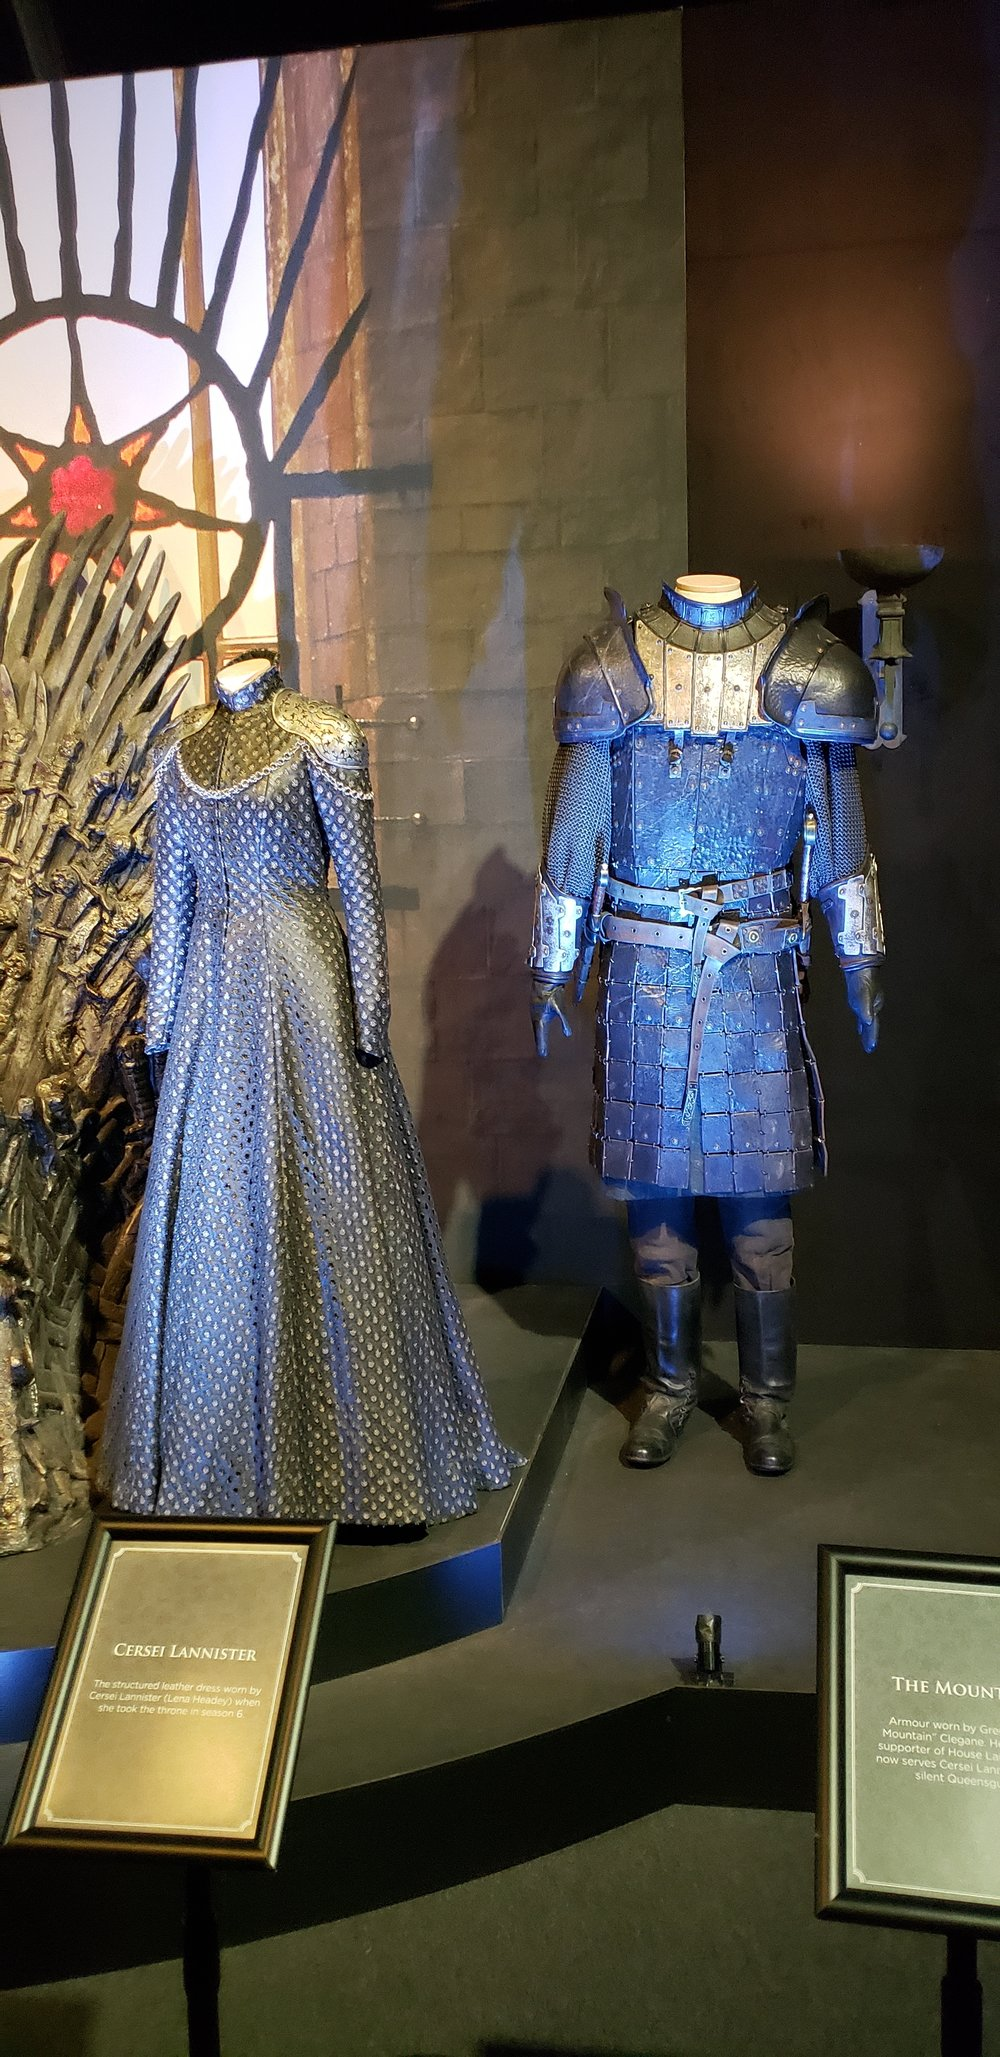 Cersei Lannister's dress inspired by Tywin's